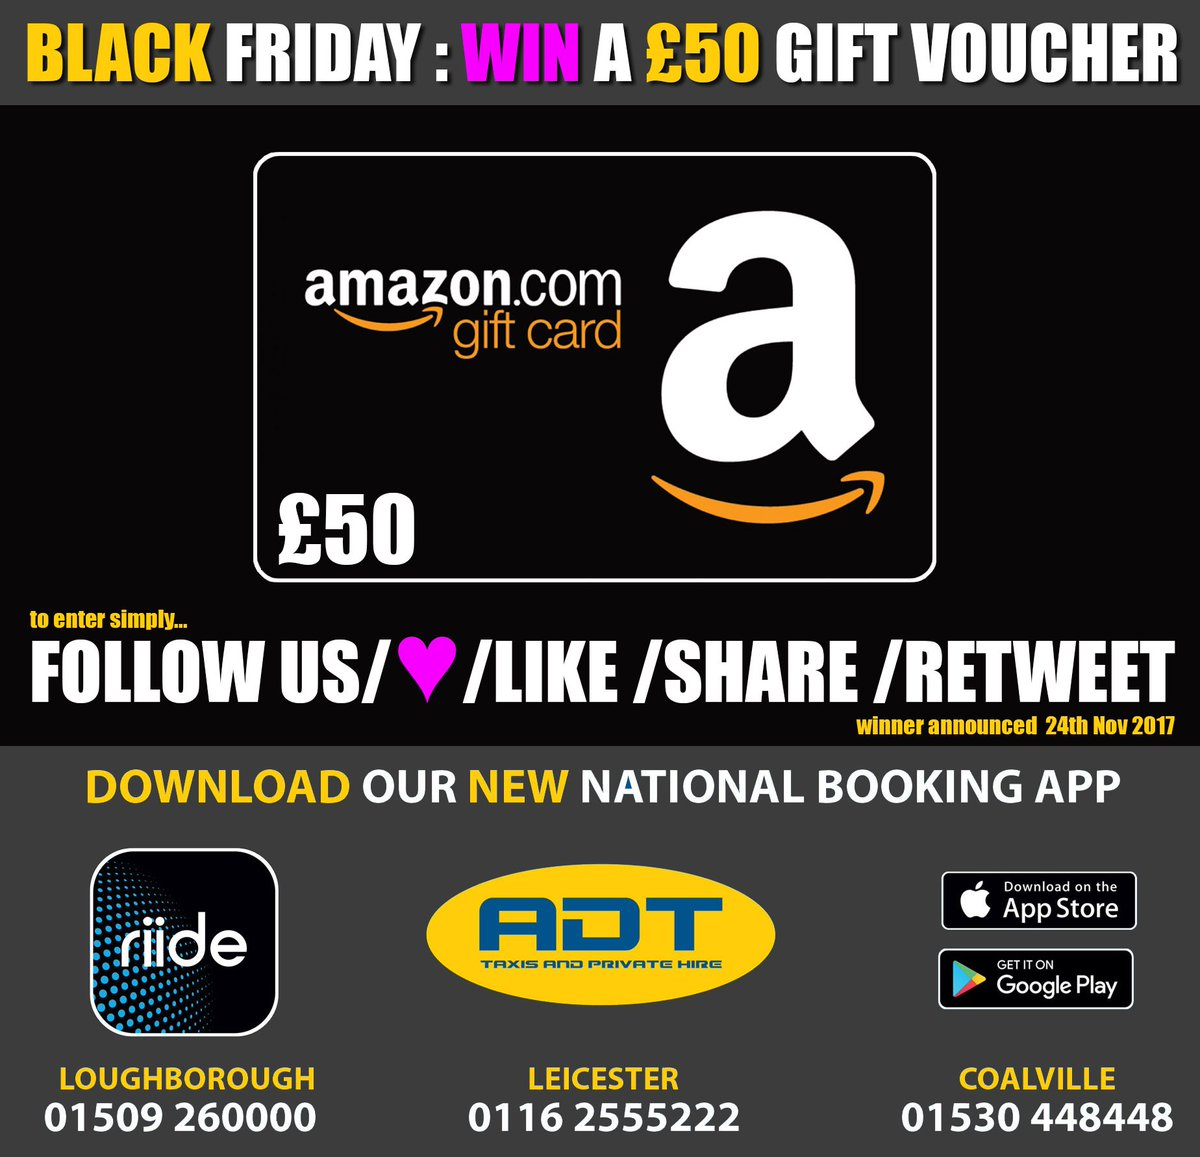 HERE IS OUR BLACK FRIDAY deal... WIN £50 Gift VOUCHER for FREE !!! To ENTER simply RT / LIKE/ SHARE /  and FOLLOW our ACCOUNT.... we will pick ONE winner tonight... SO GET ENTERING !! #win #free #prize #raffle #blackfriday #gift #giftvoucher And download our Riide APP today !<br>http://pic.twitter.com/ixMYu14V6J